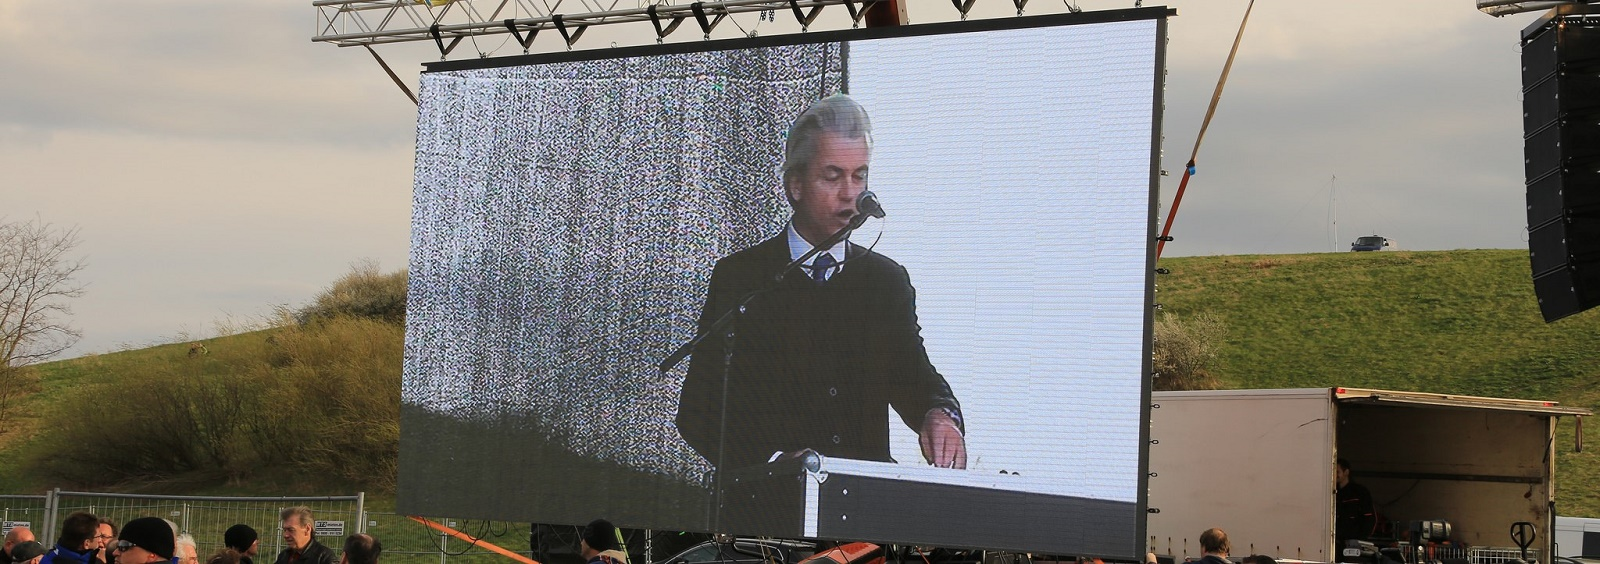 Dutch politician and founder of the Party for Freedom Geert Wilders (Photo: Flickr/Metropolico.org)